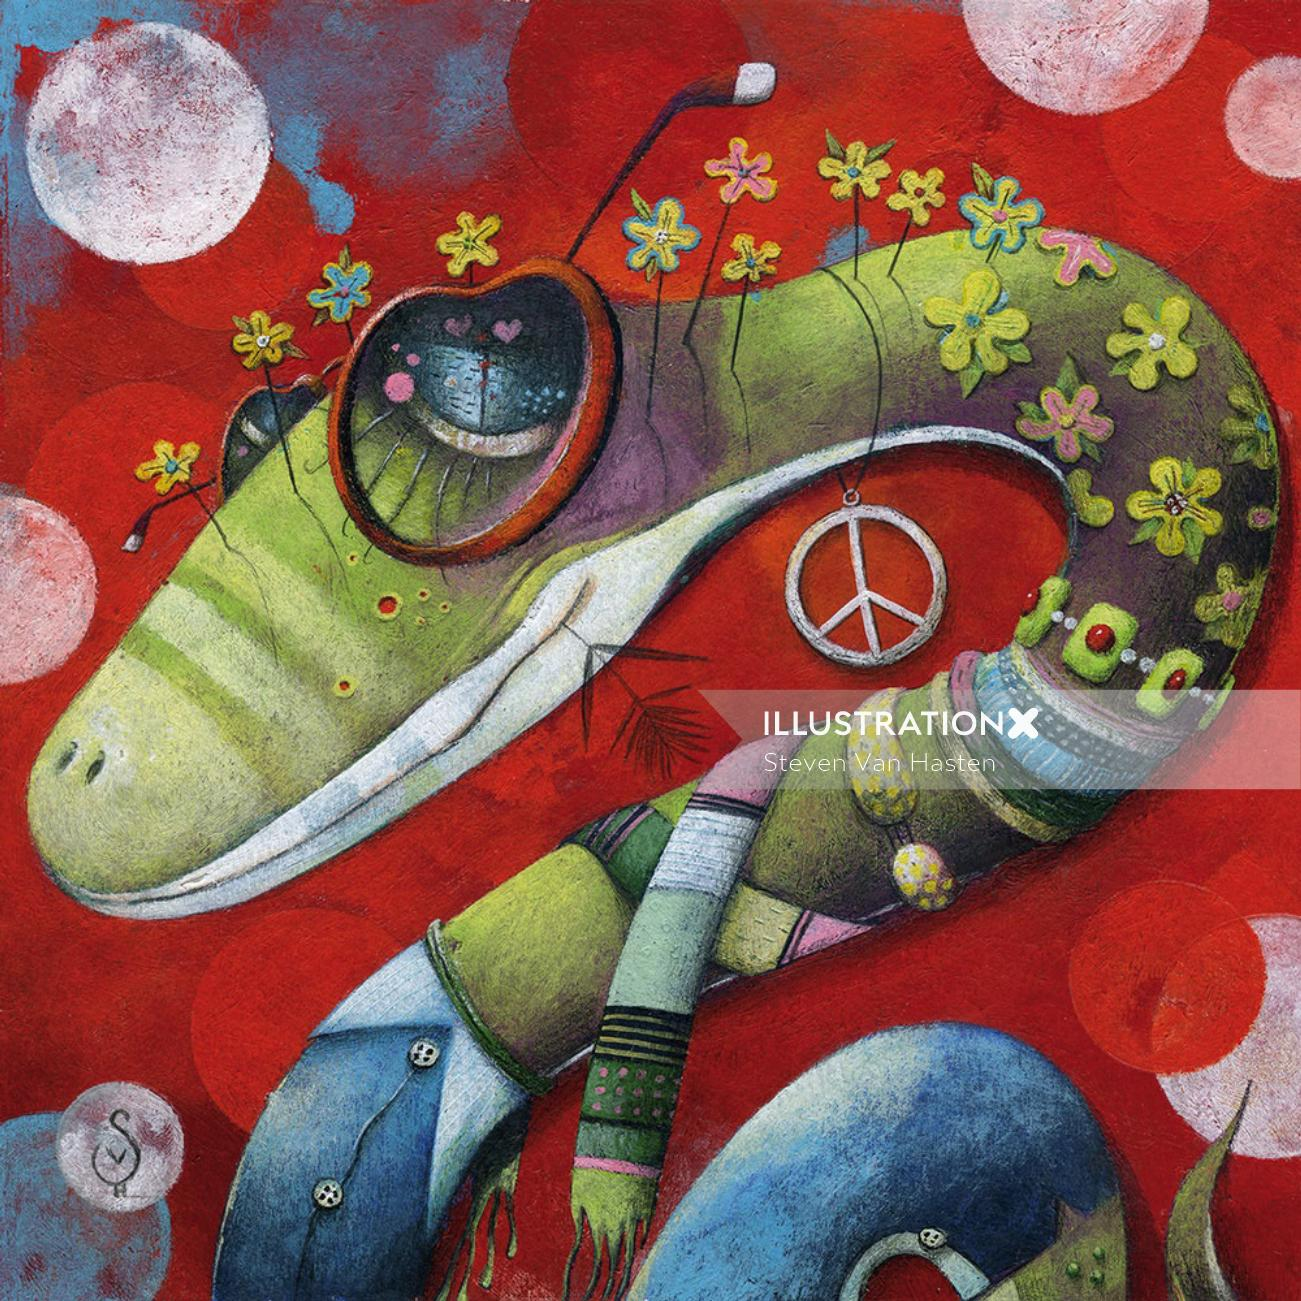 snake, hippie, sixties, peace, flowers, flower power,psychedelic